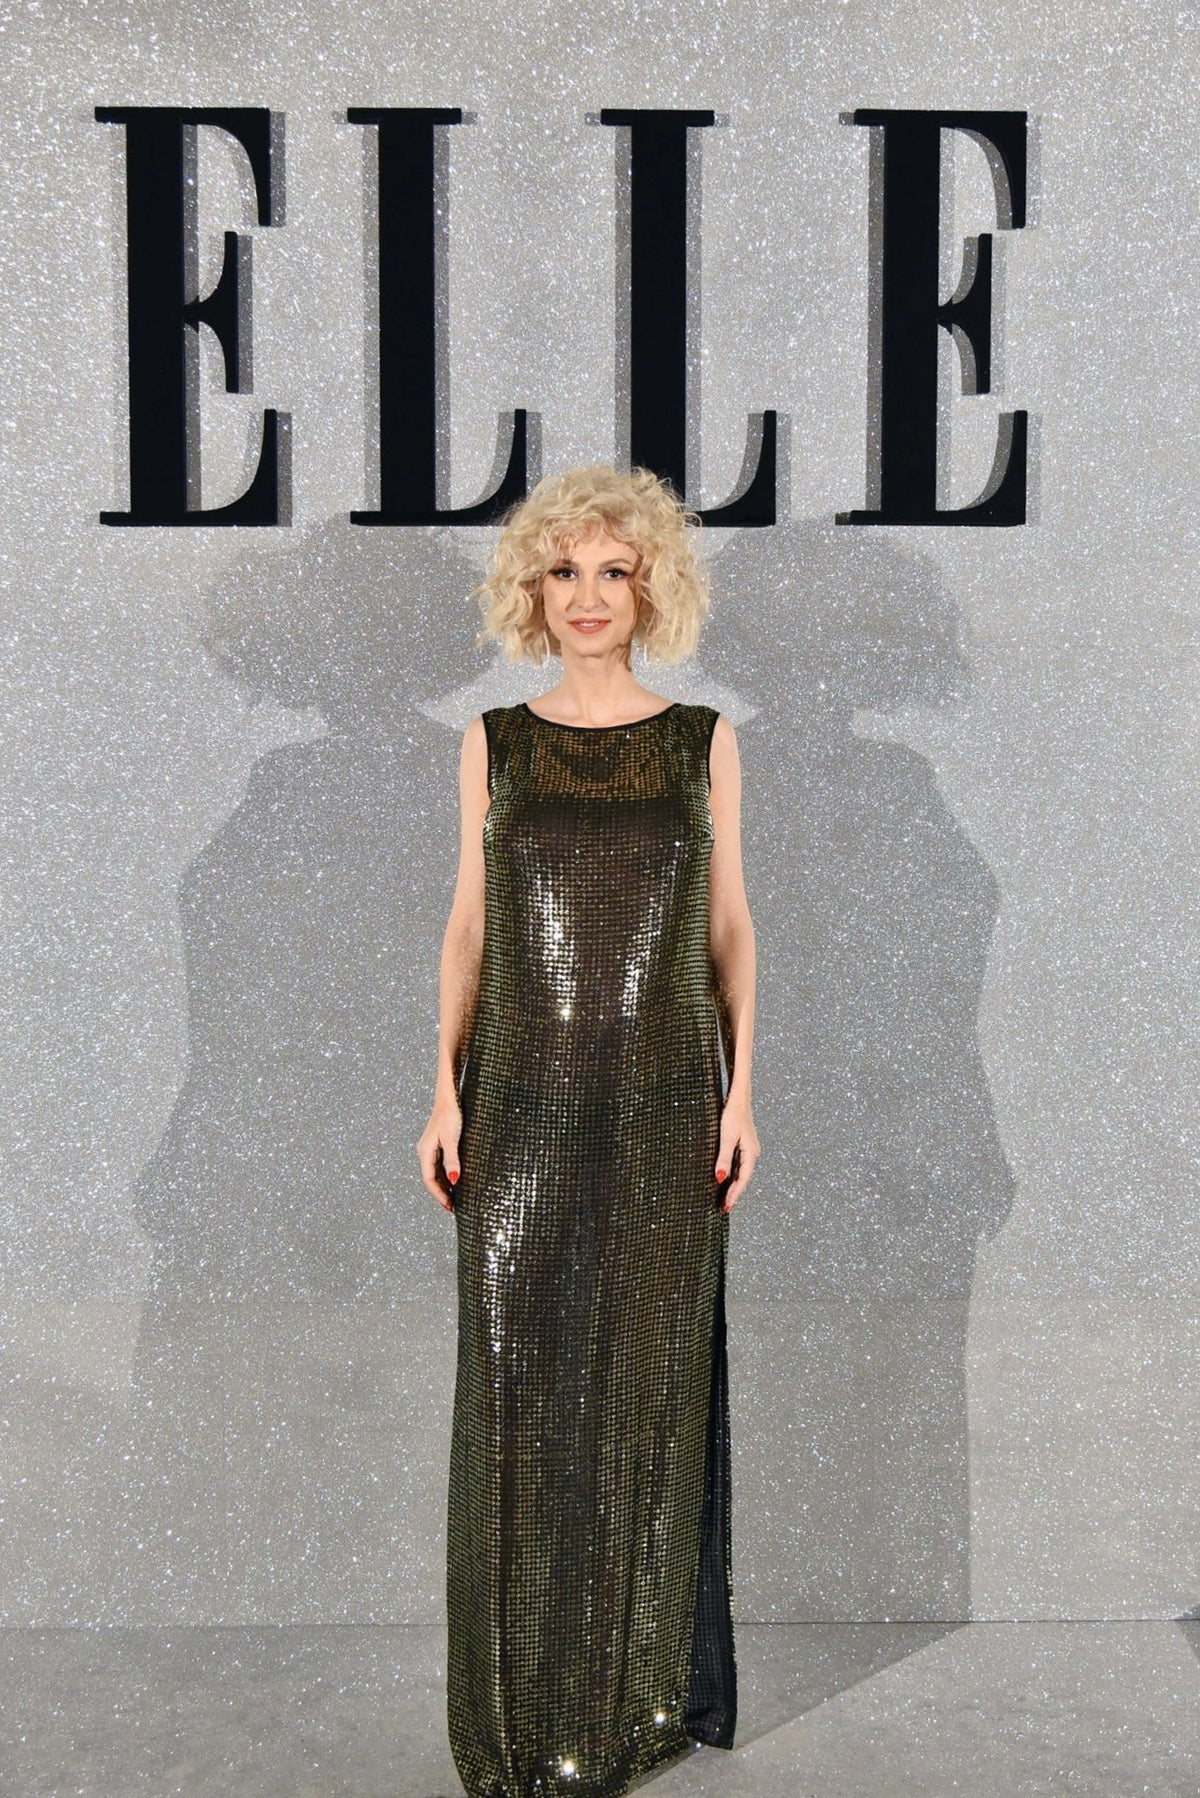 Andreea Balan dazzling in OMRA dress at ELLE Style Awards